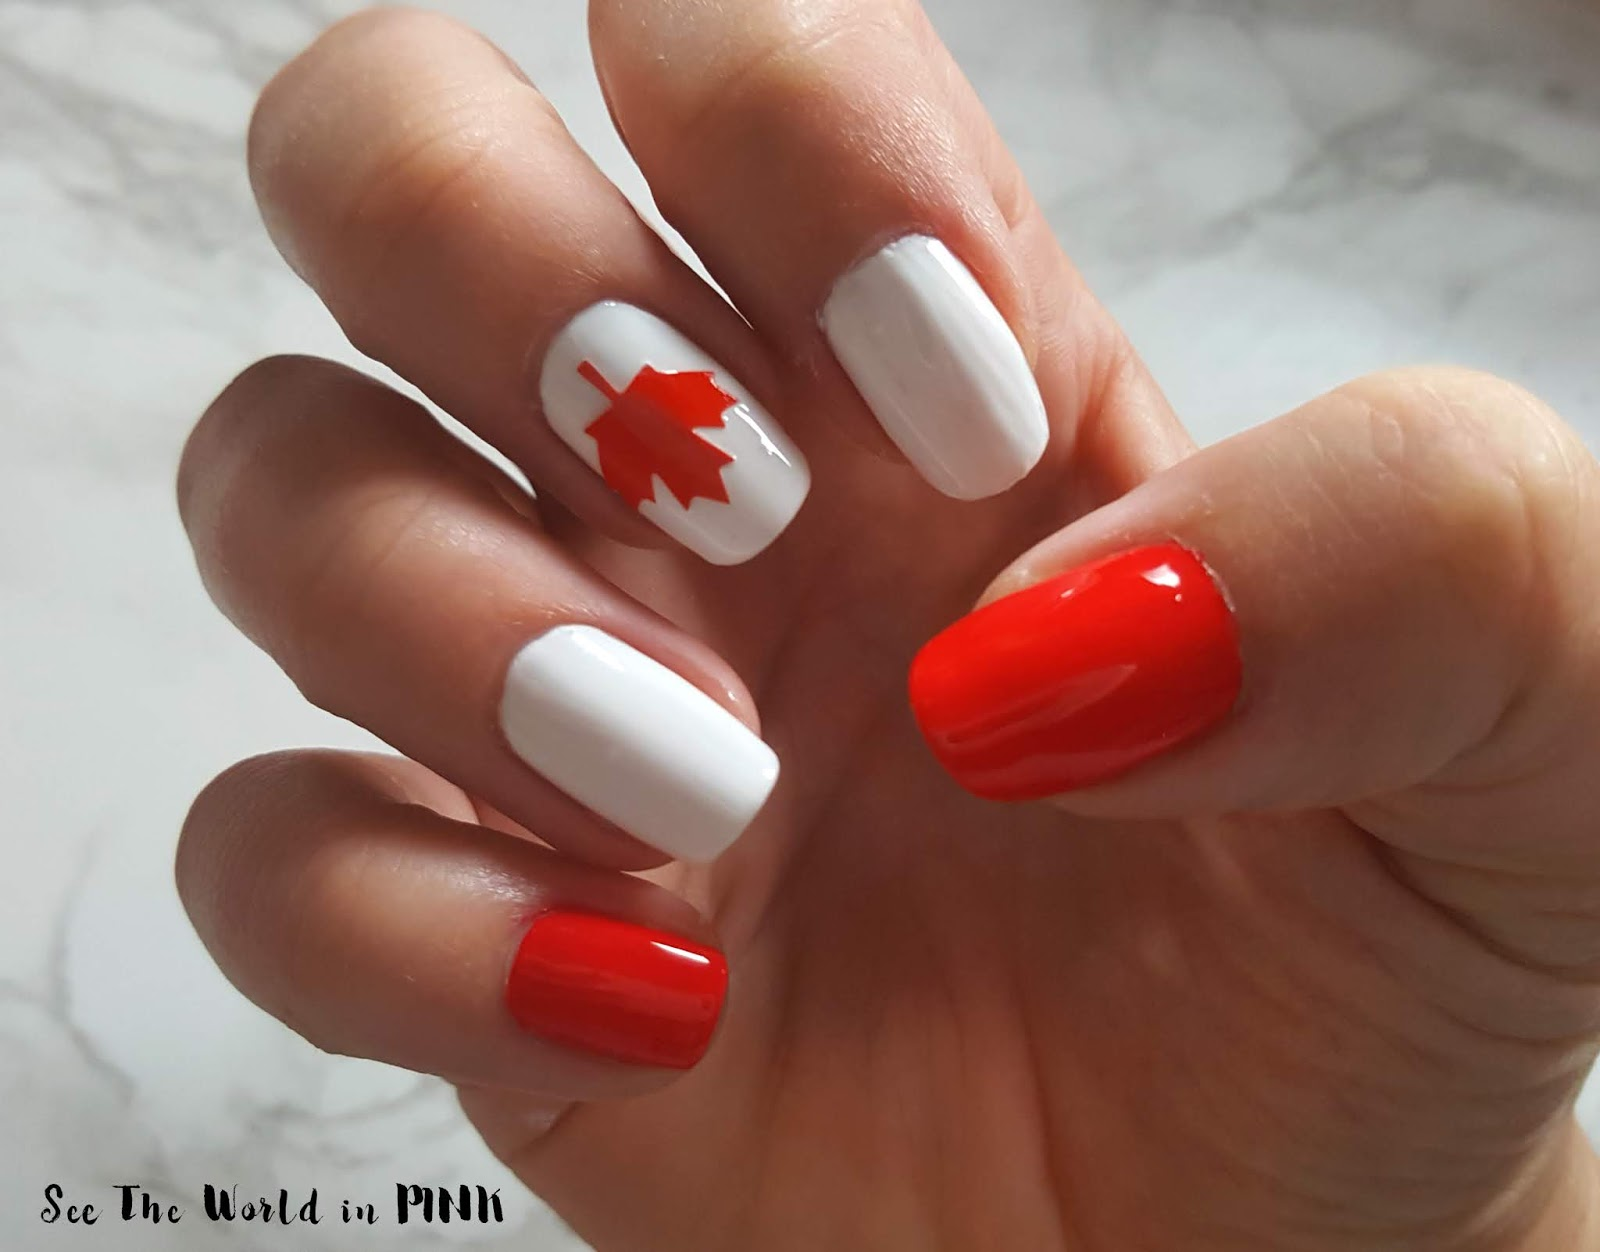 Manicure Monday - Canada Flag Nails!